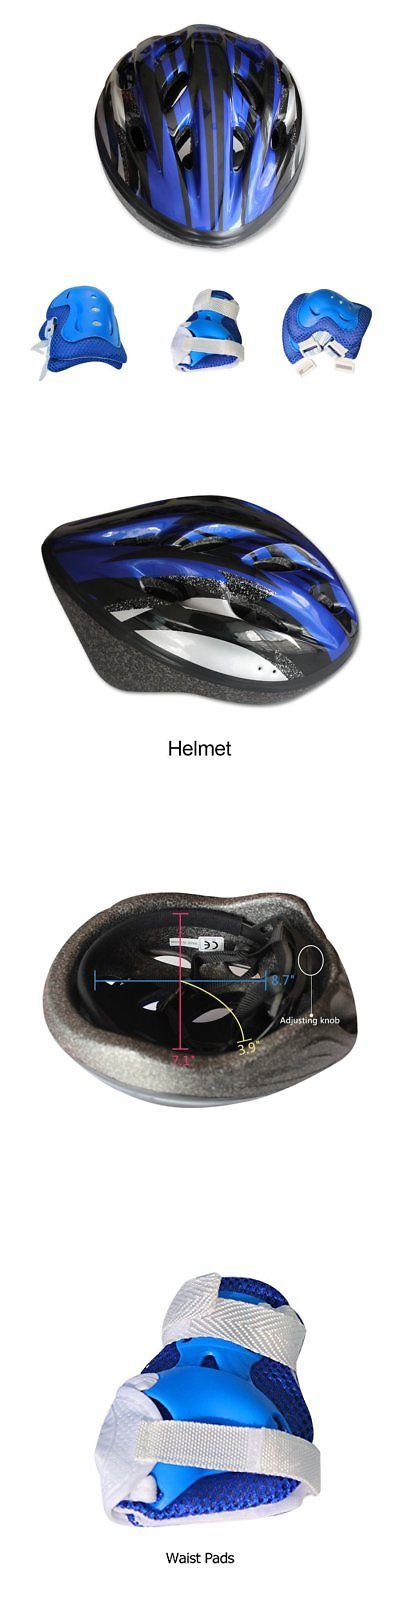 Protective Gear 36317: Kids Bicycle Helmet Knee-Pad Elbow Wrist Protection Gear For Bicycle And Blue -> BUY IT NOW ONLY: $35.19 on eBay!